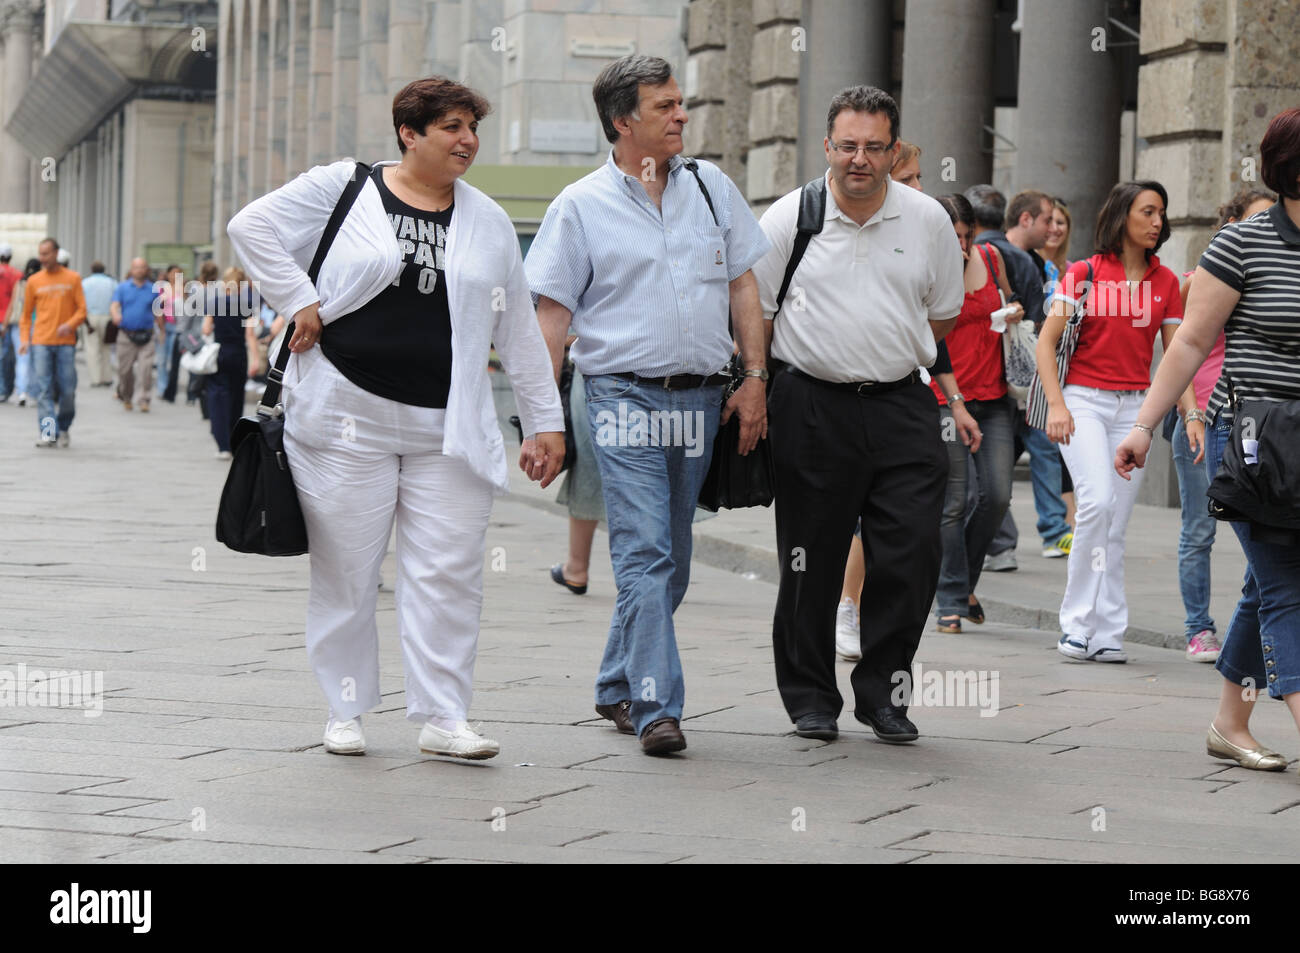 Three overweight visitors carrying shoulder bags on side of Piazza del Duomo Milan Milano Italy Italia - Stock Image